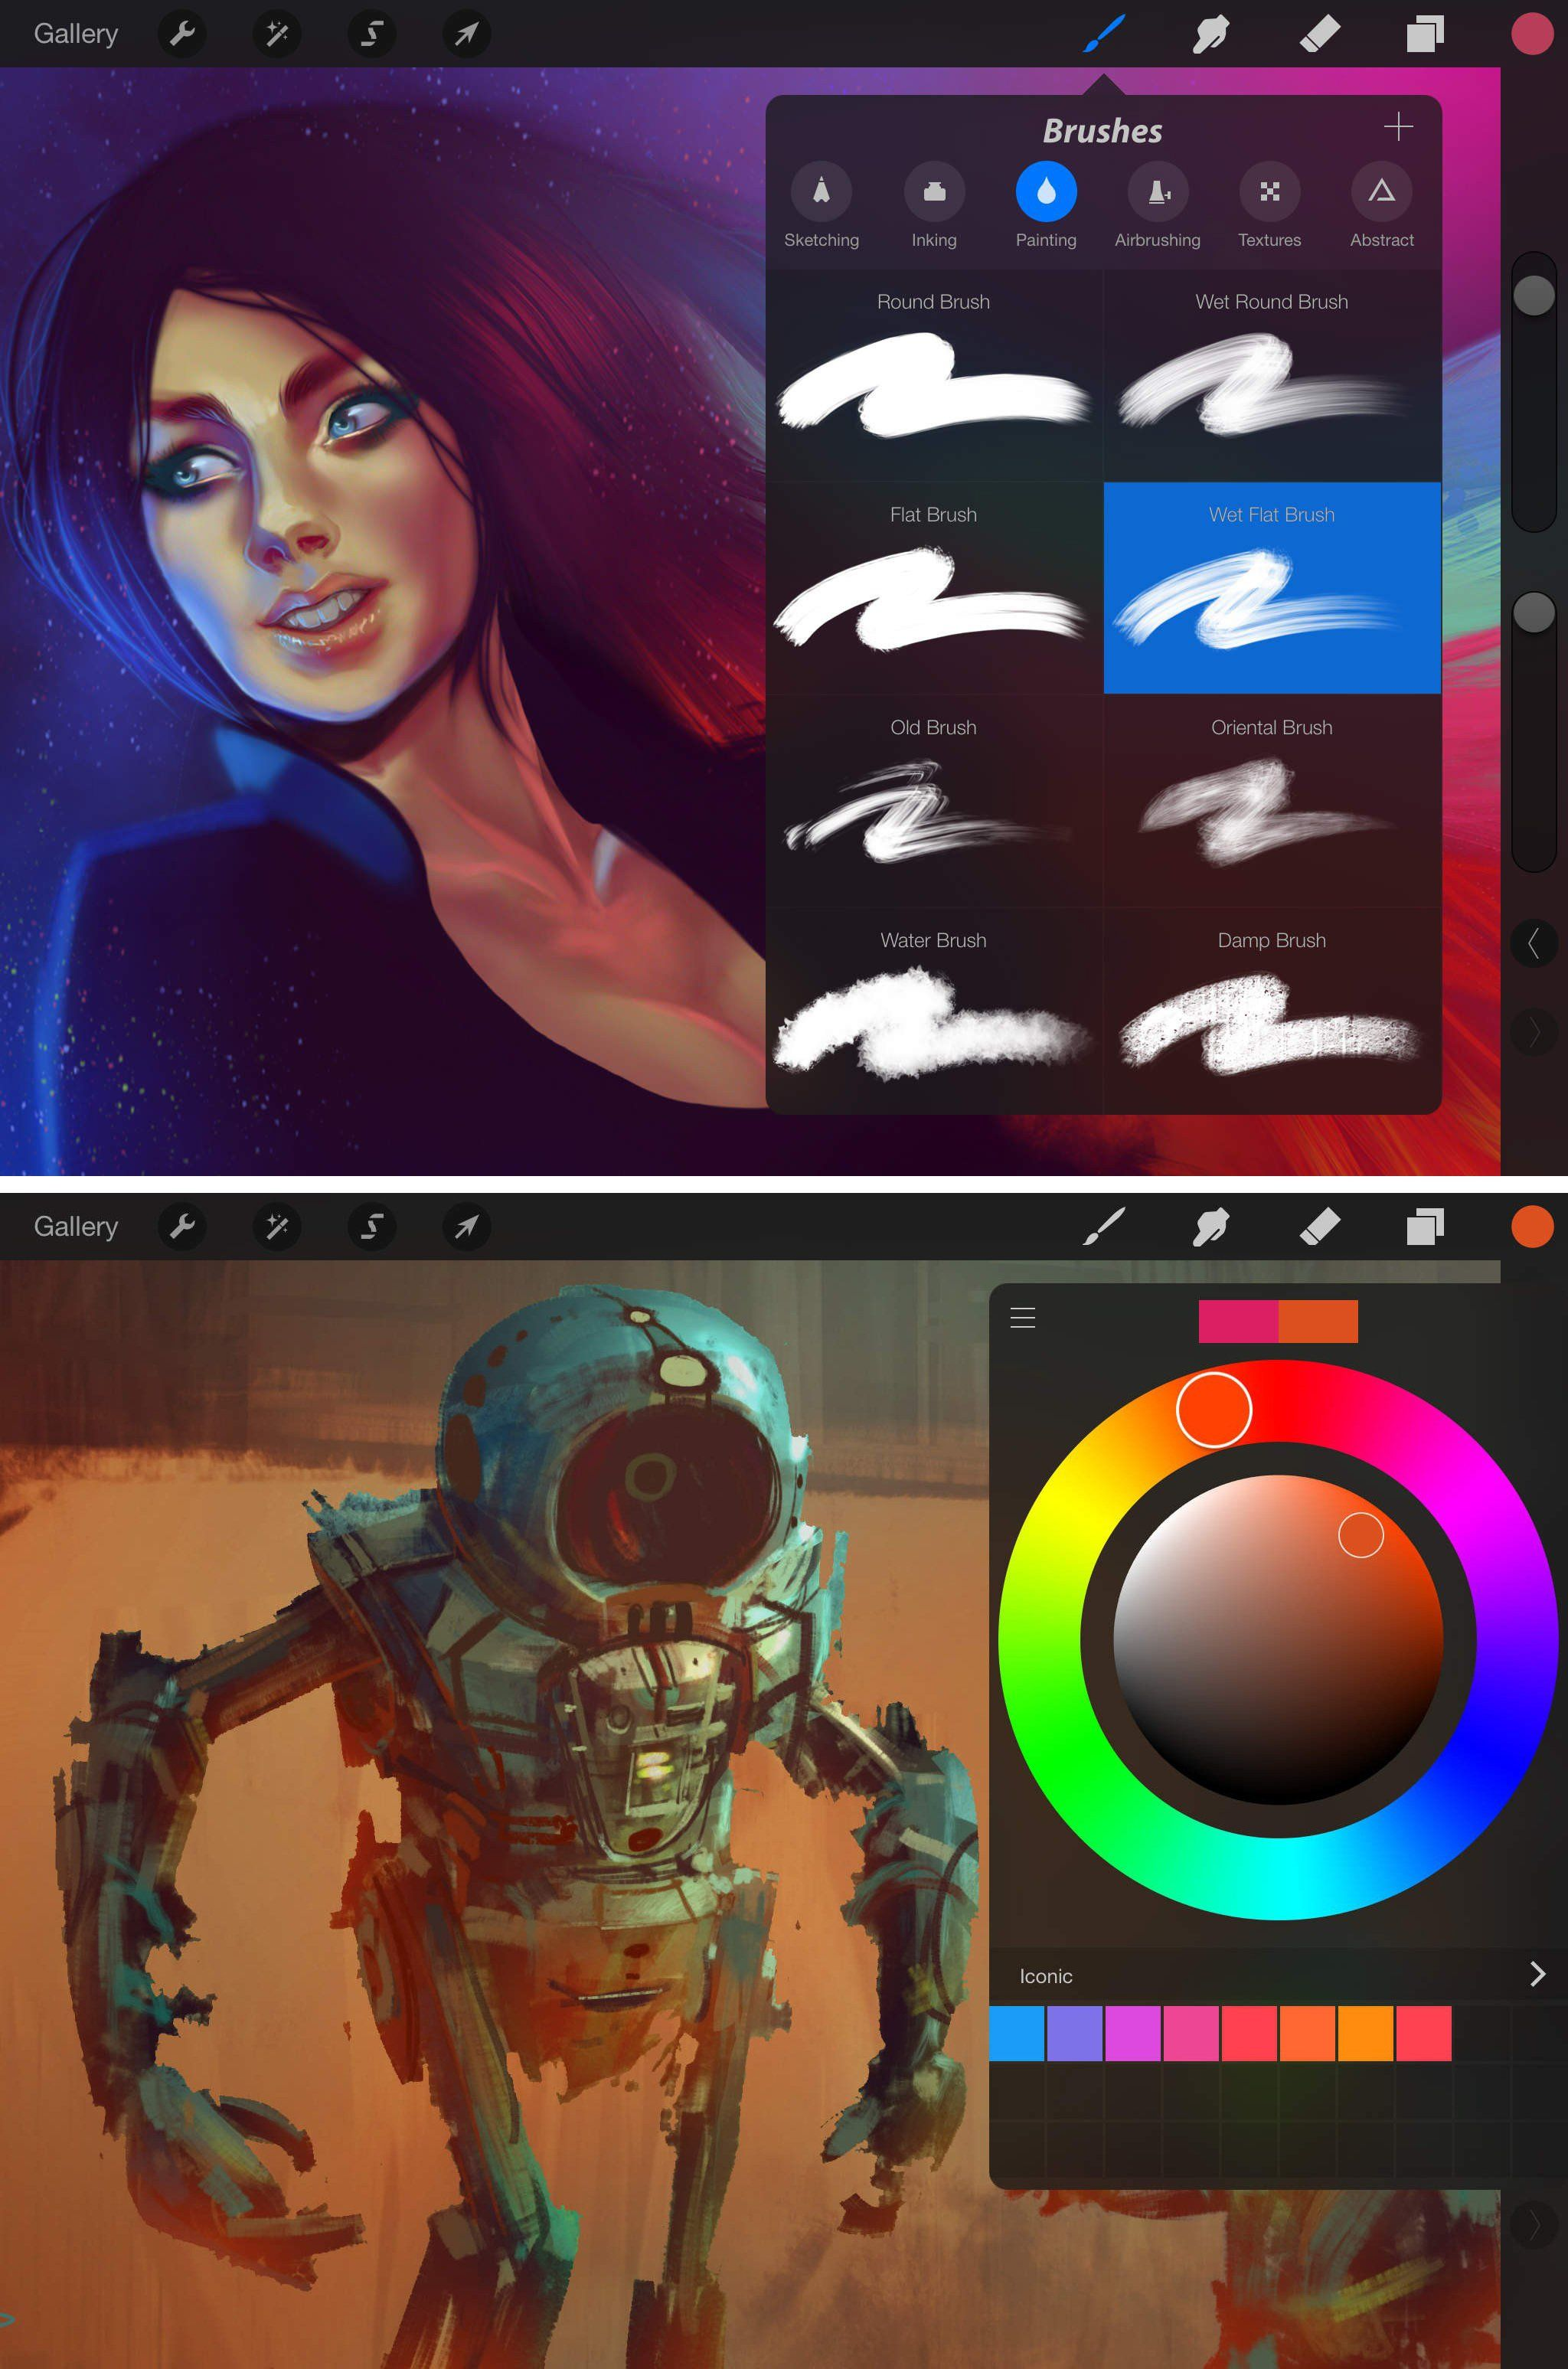 Our pick of the best apps for artists, including Procreate 2